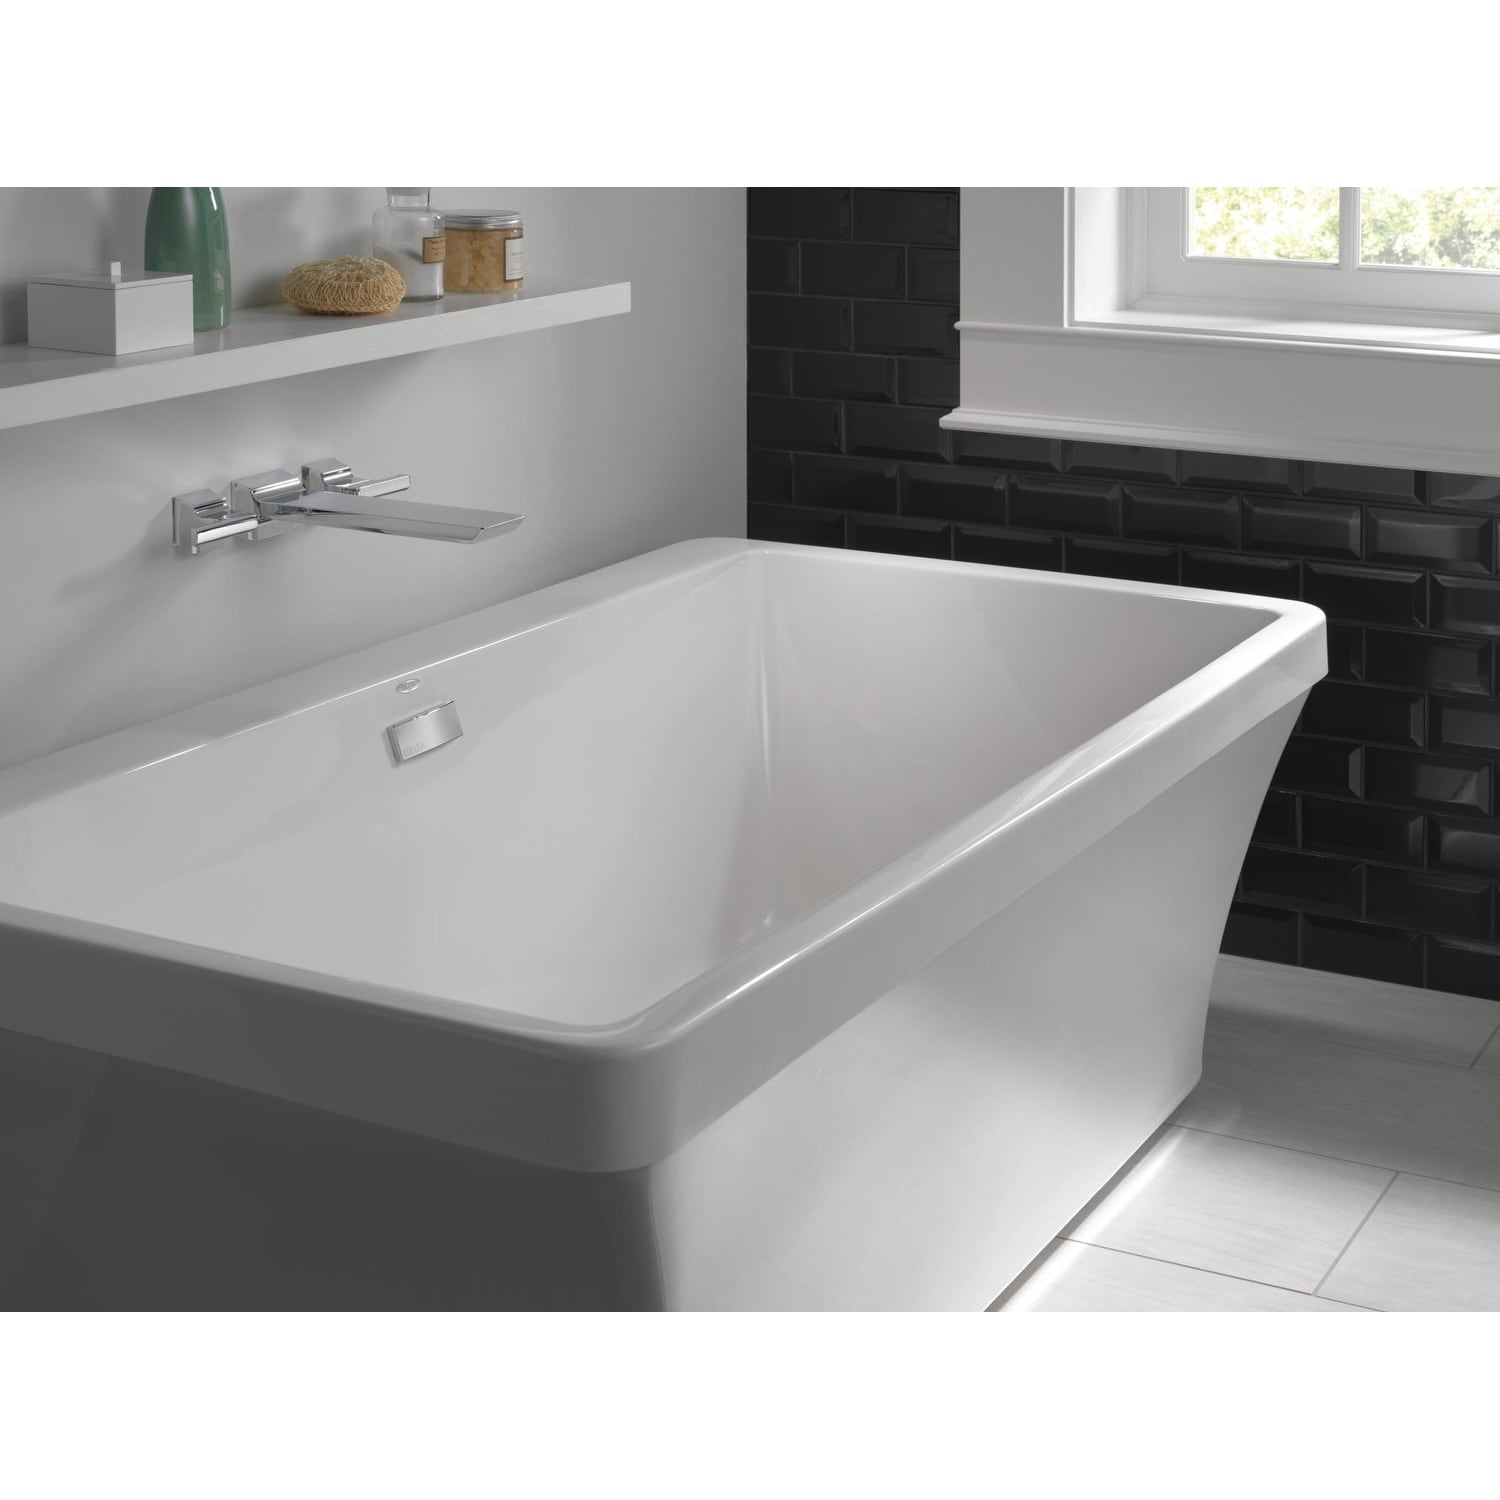 Delta T5799 Pivotal Two Handle Wall Mounted Tub Filler Less Valve Overstock 18613206